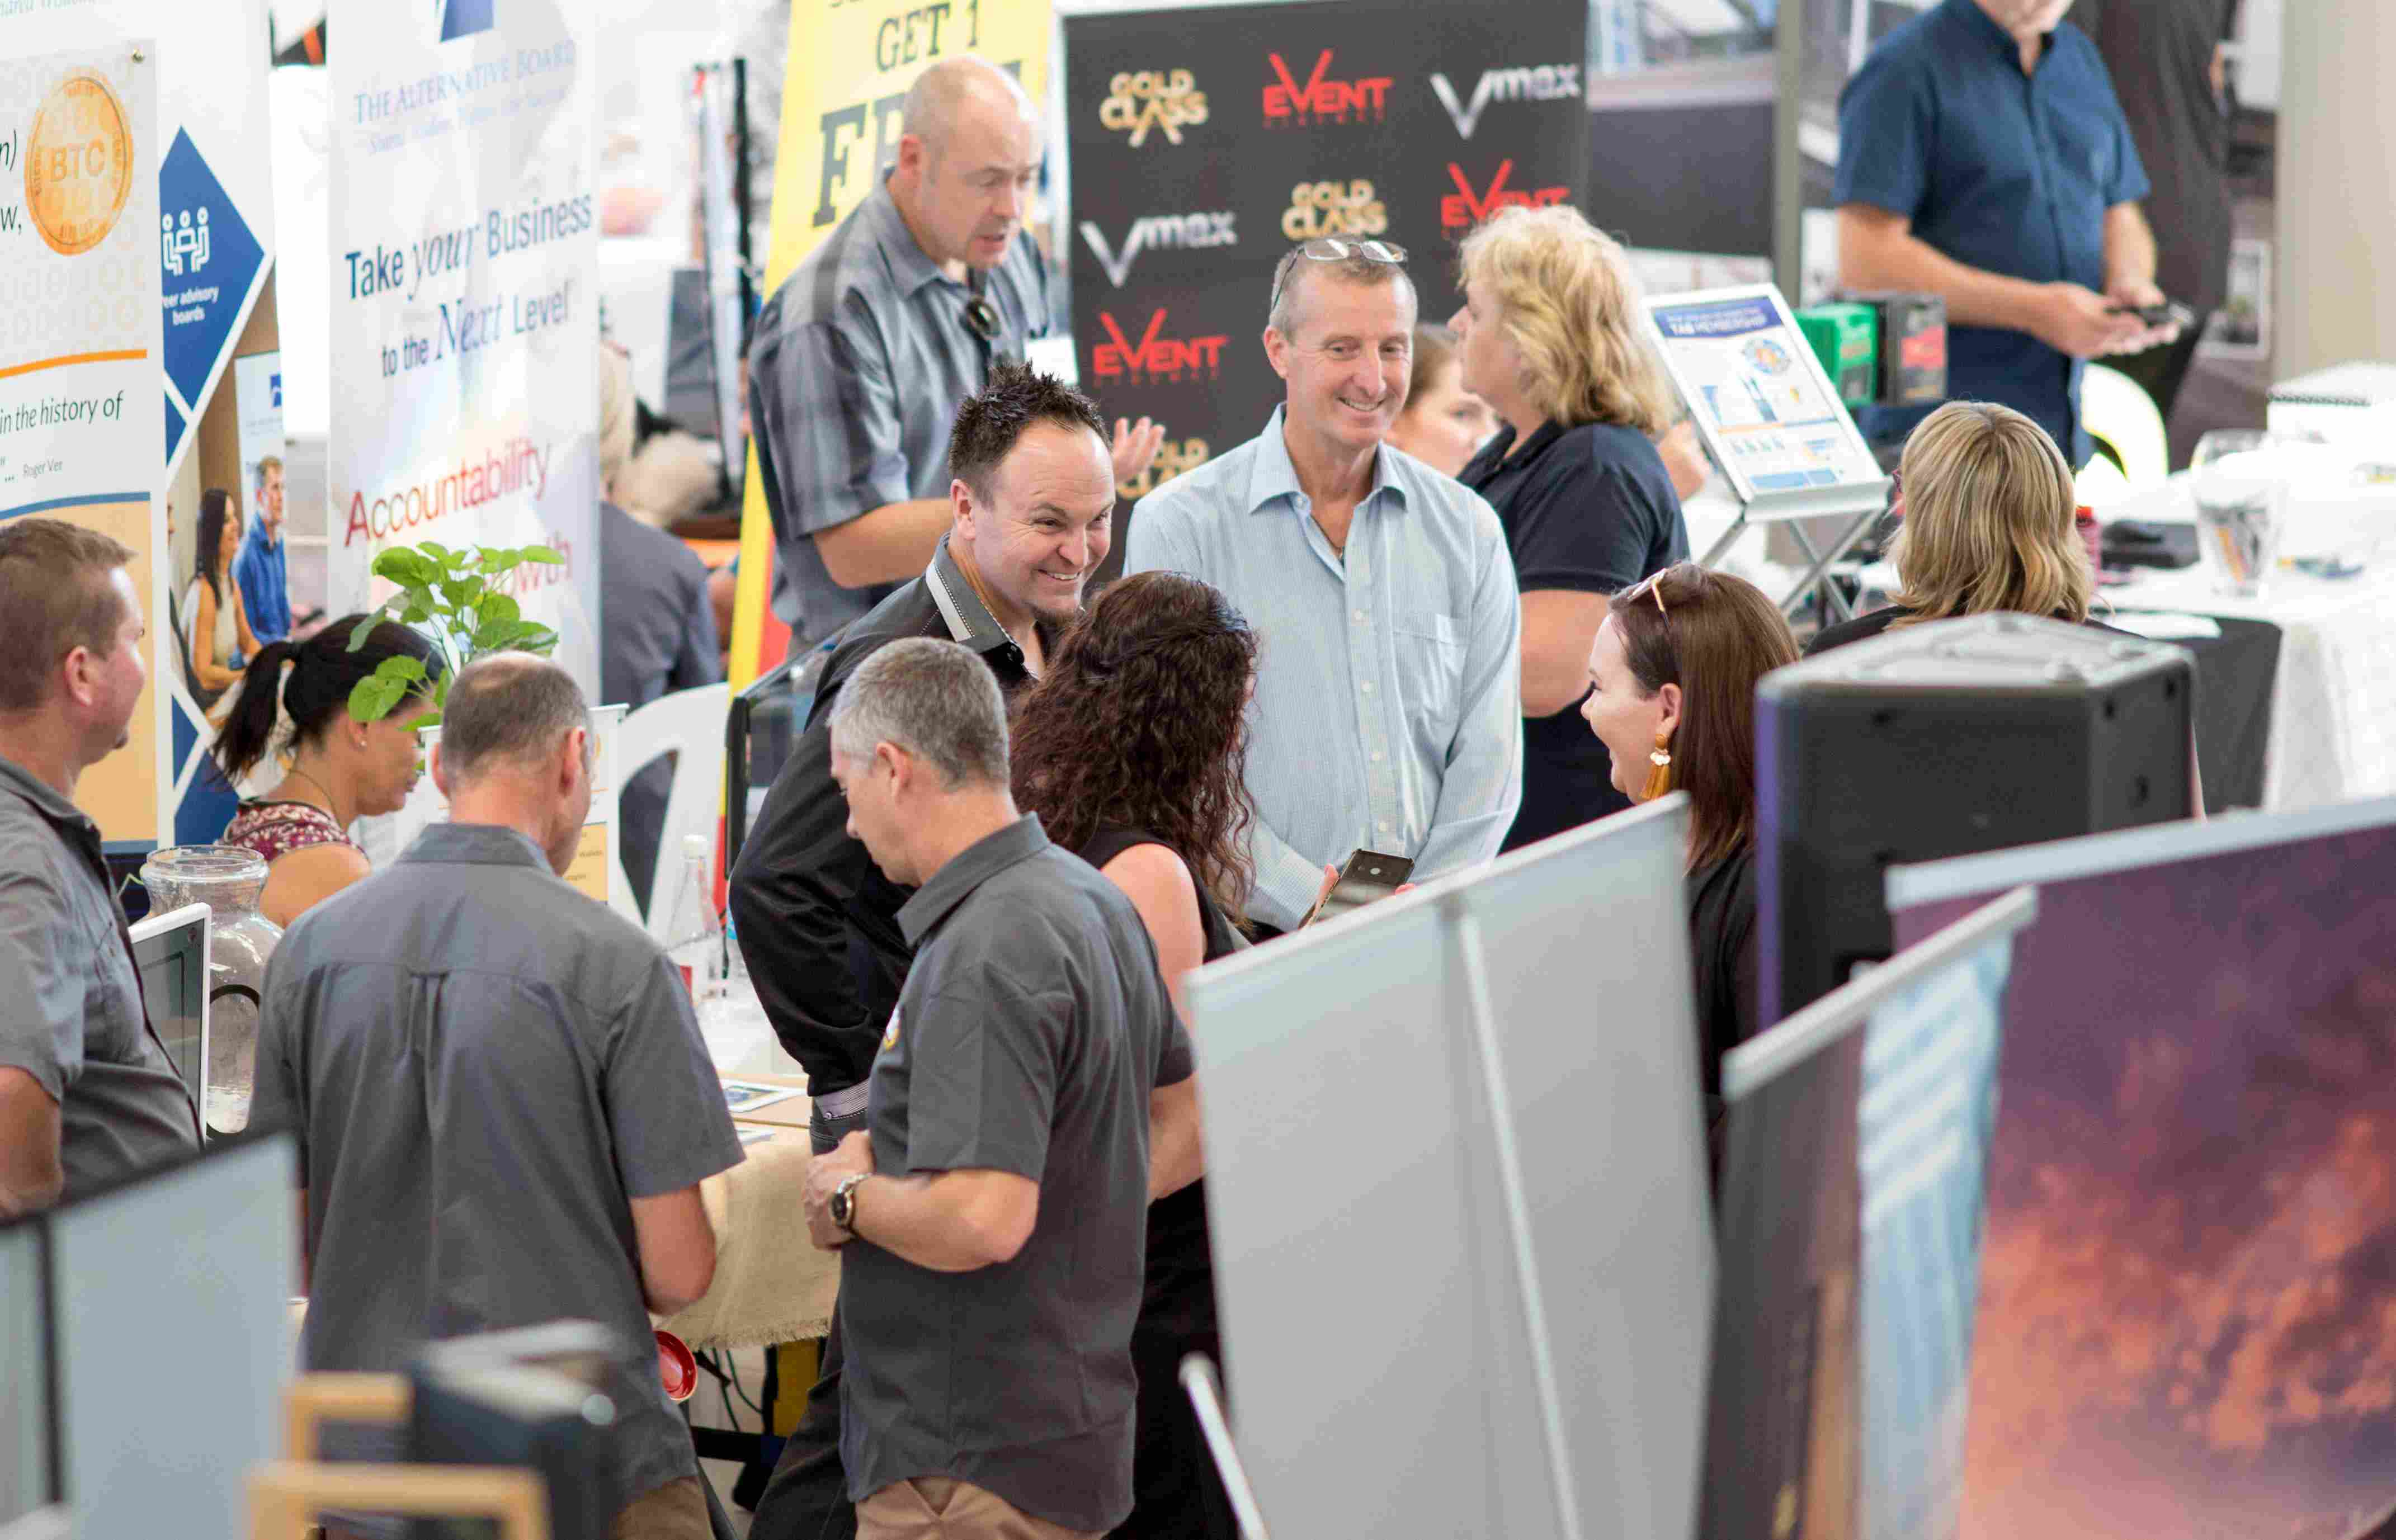 Business Expos | Brisbane | Gold Coast | Small Business Expos |  U8a8109 Min